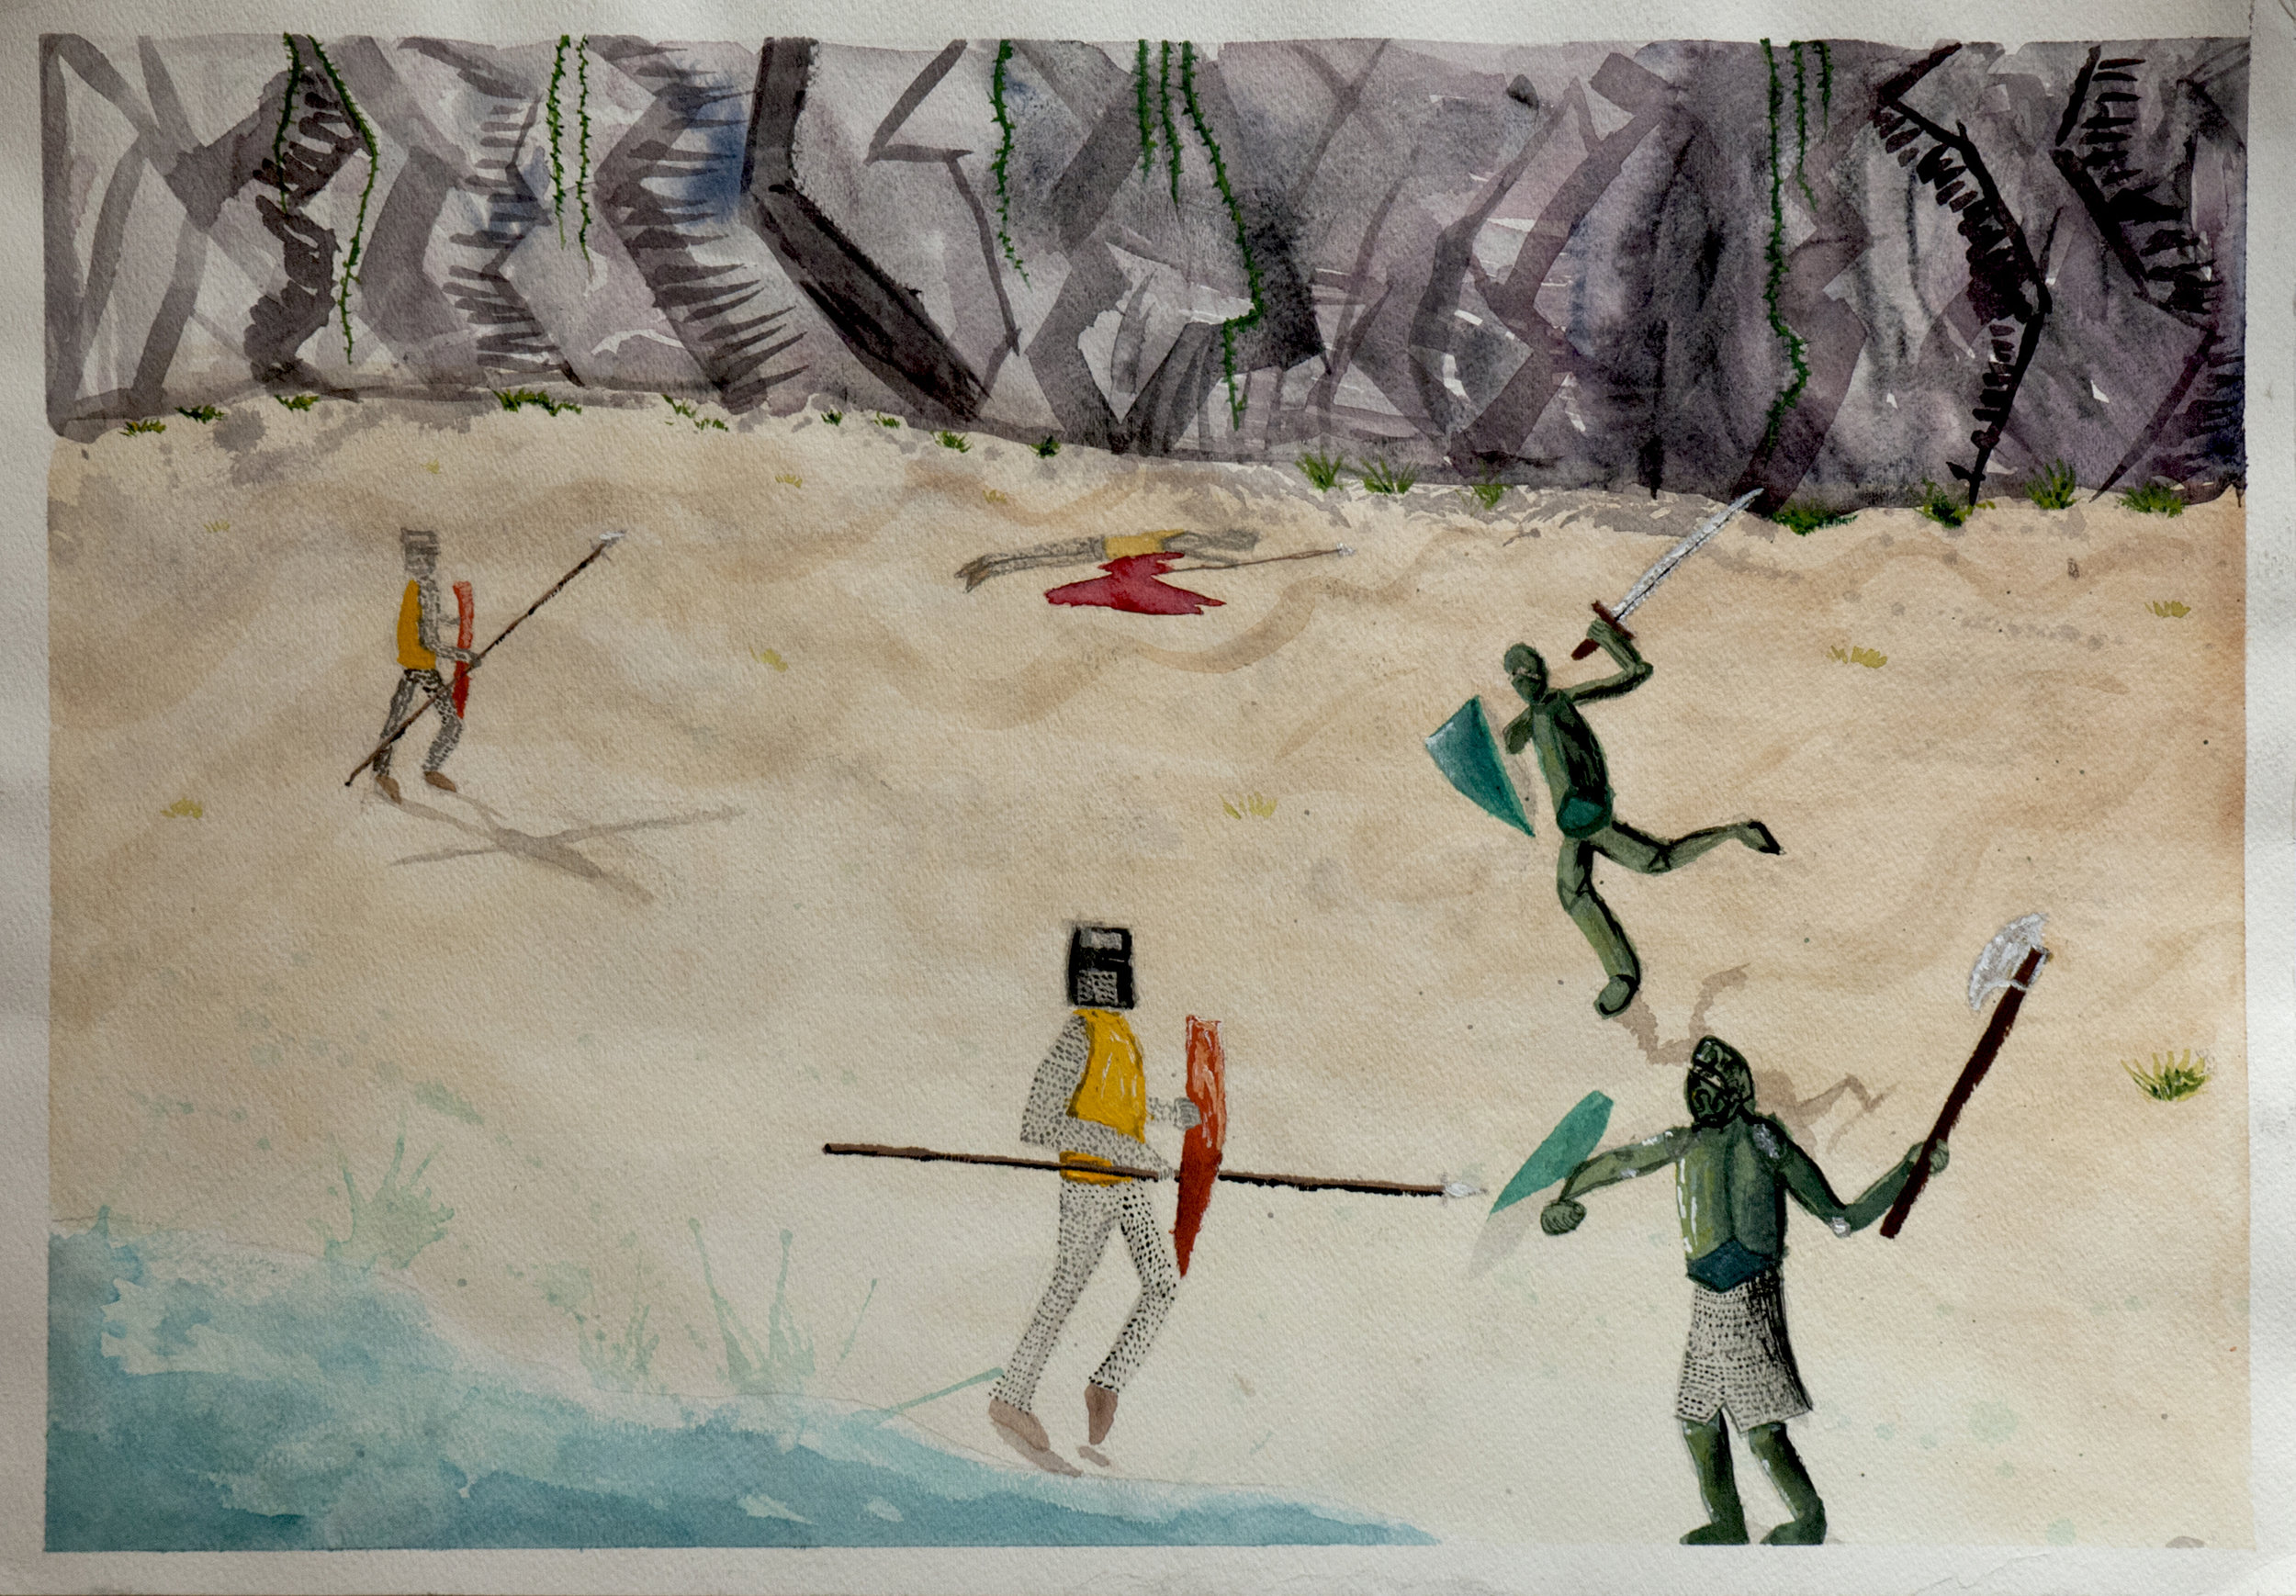 "Battle on the Beach / 22"" tall x 30"" wide, gouache on paper"